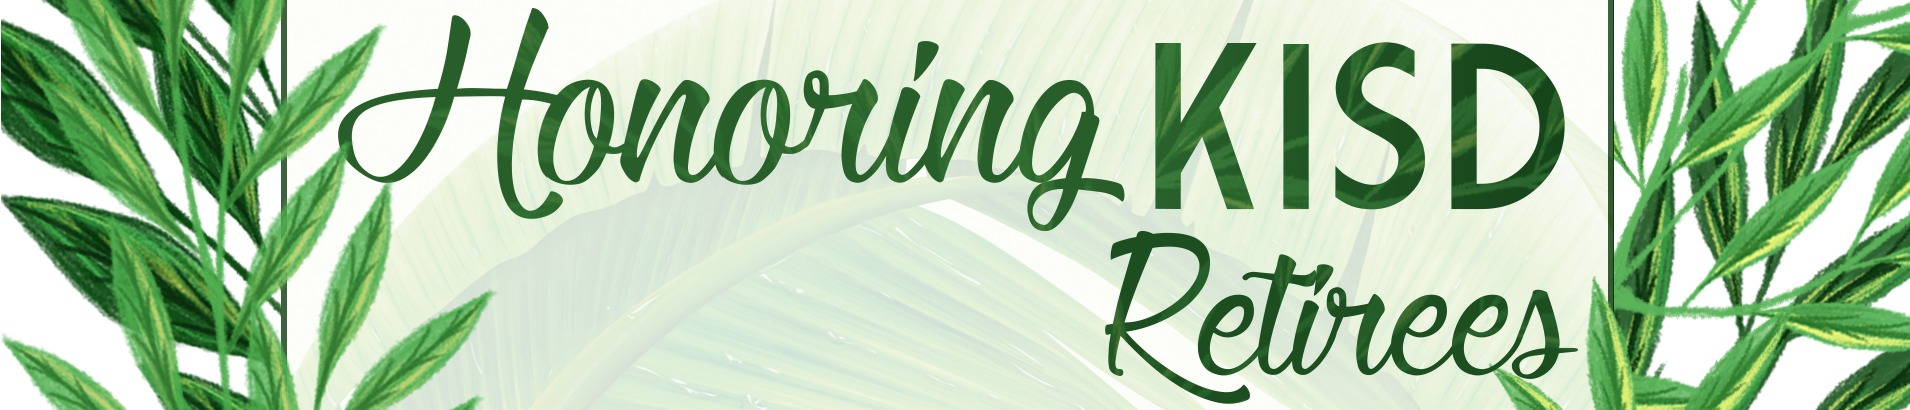 Retirement Banquet web banner.  The background of this banner has green palm leaves.